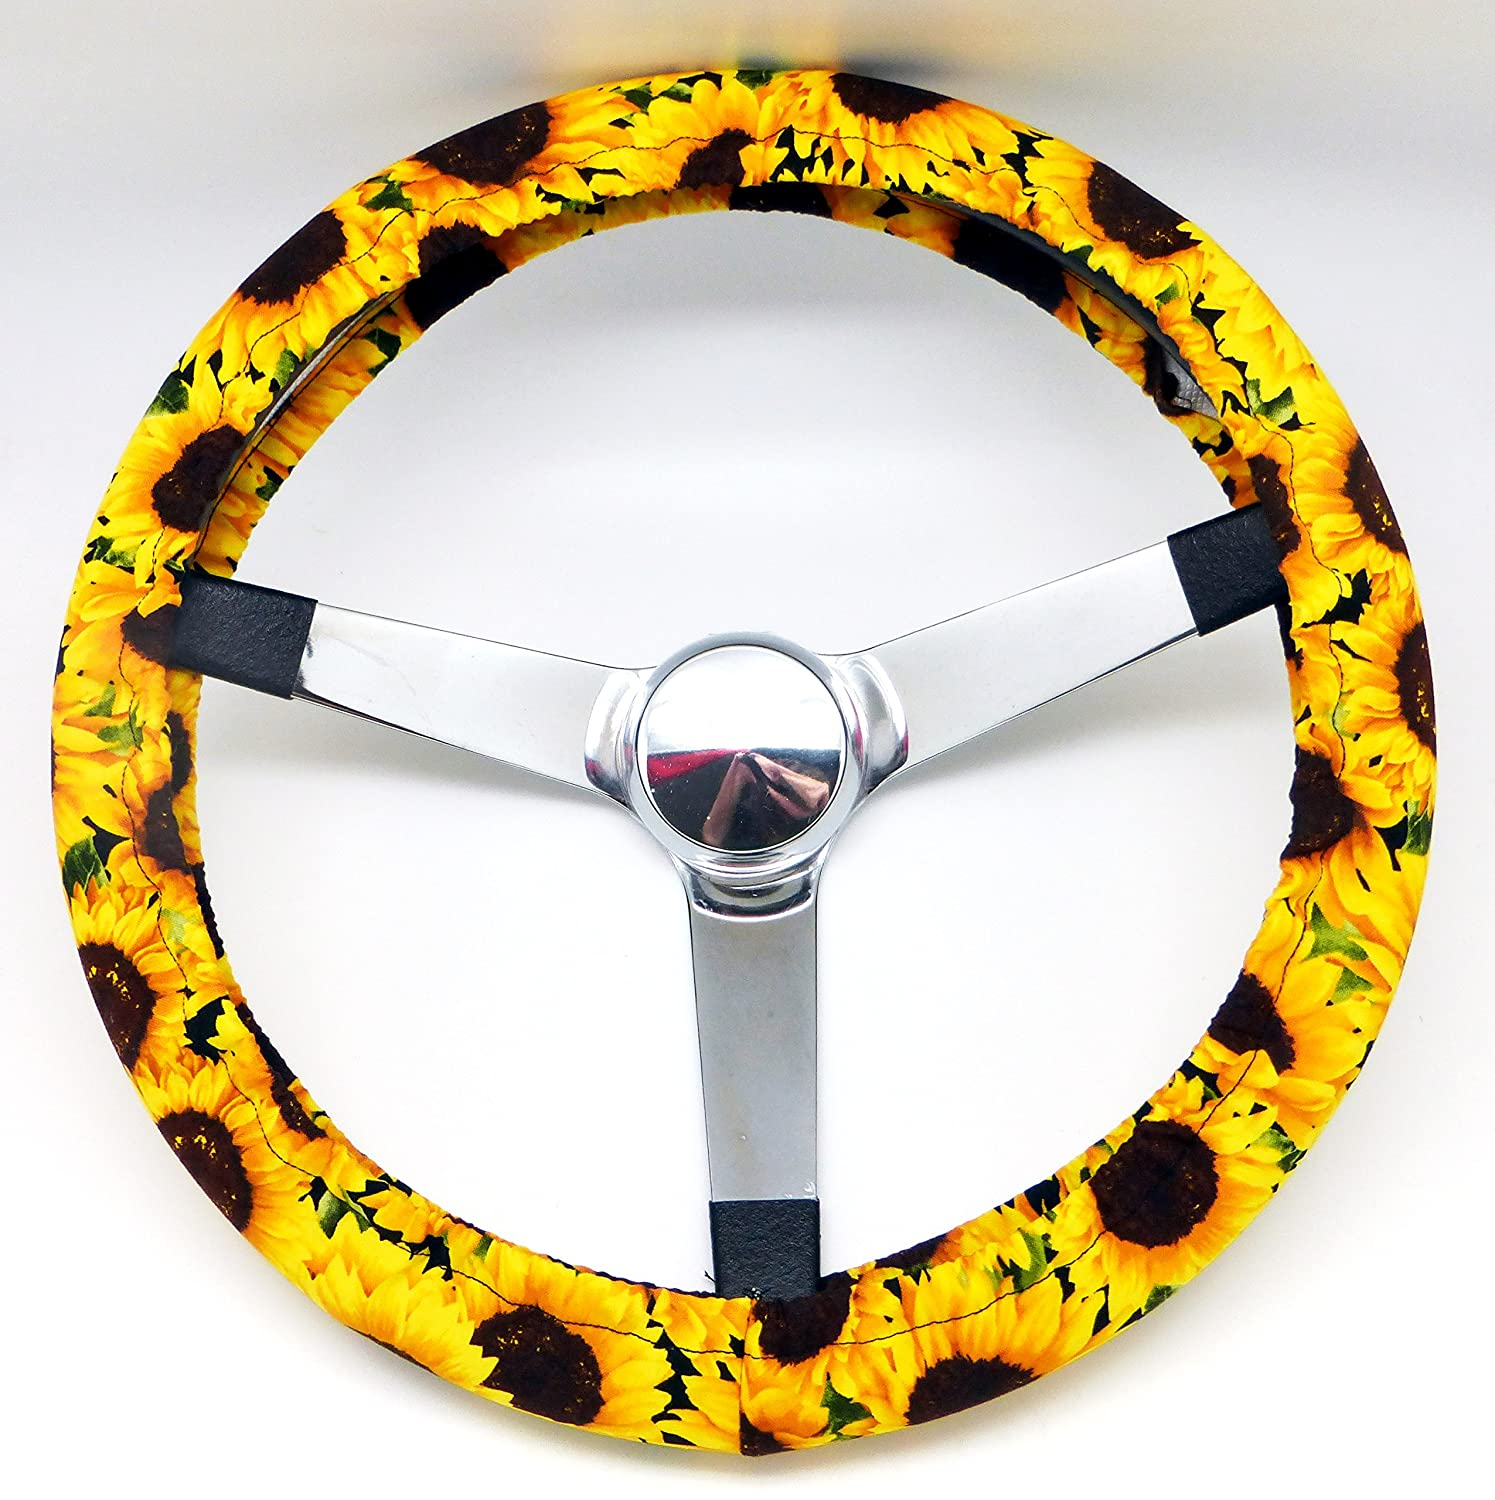 Superb Mana Trading Handmade Steering Wheel Cover Sunflowers Floral Andrewgaddart Wooden Chair Designs For Living Room Andrewgaddartcom